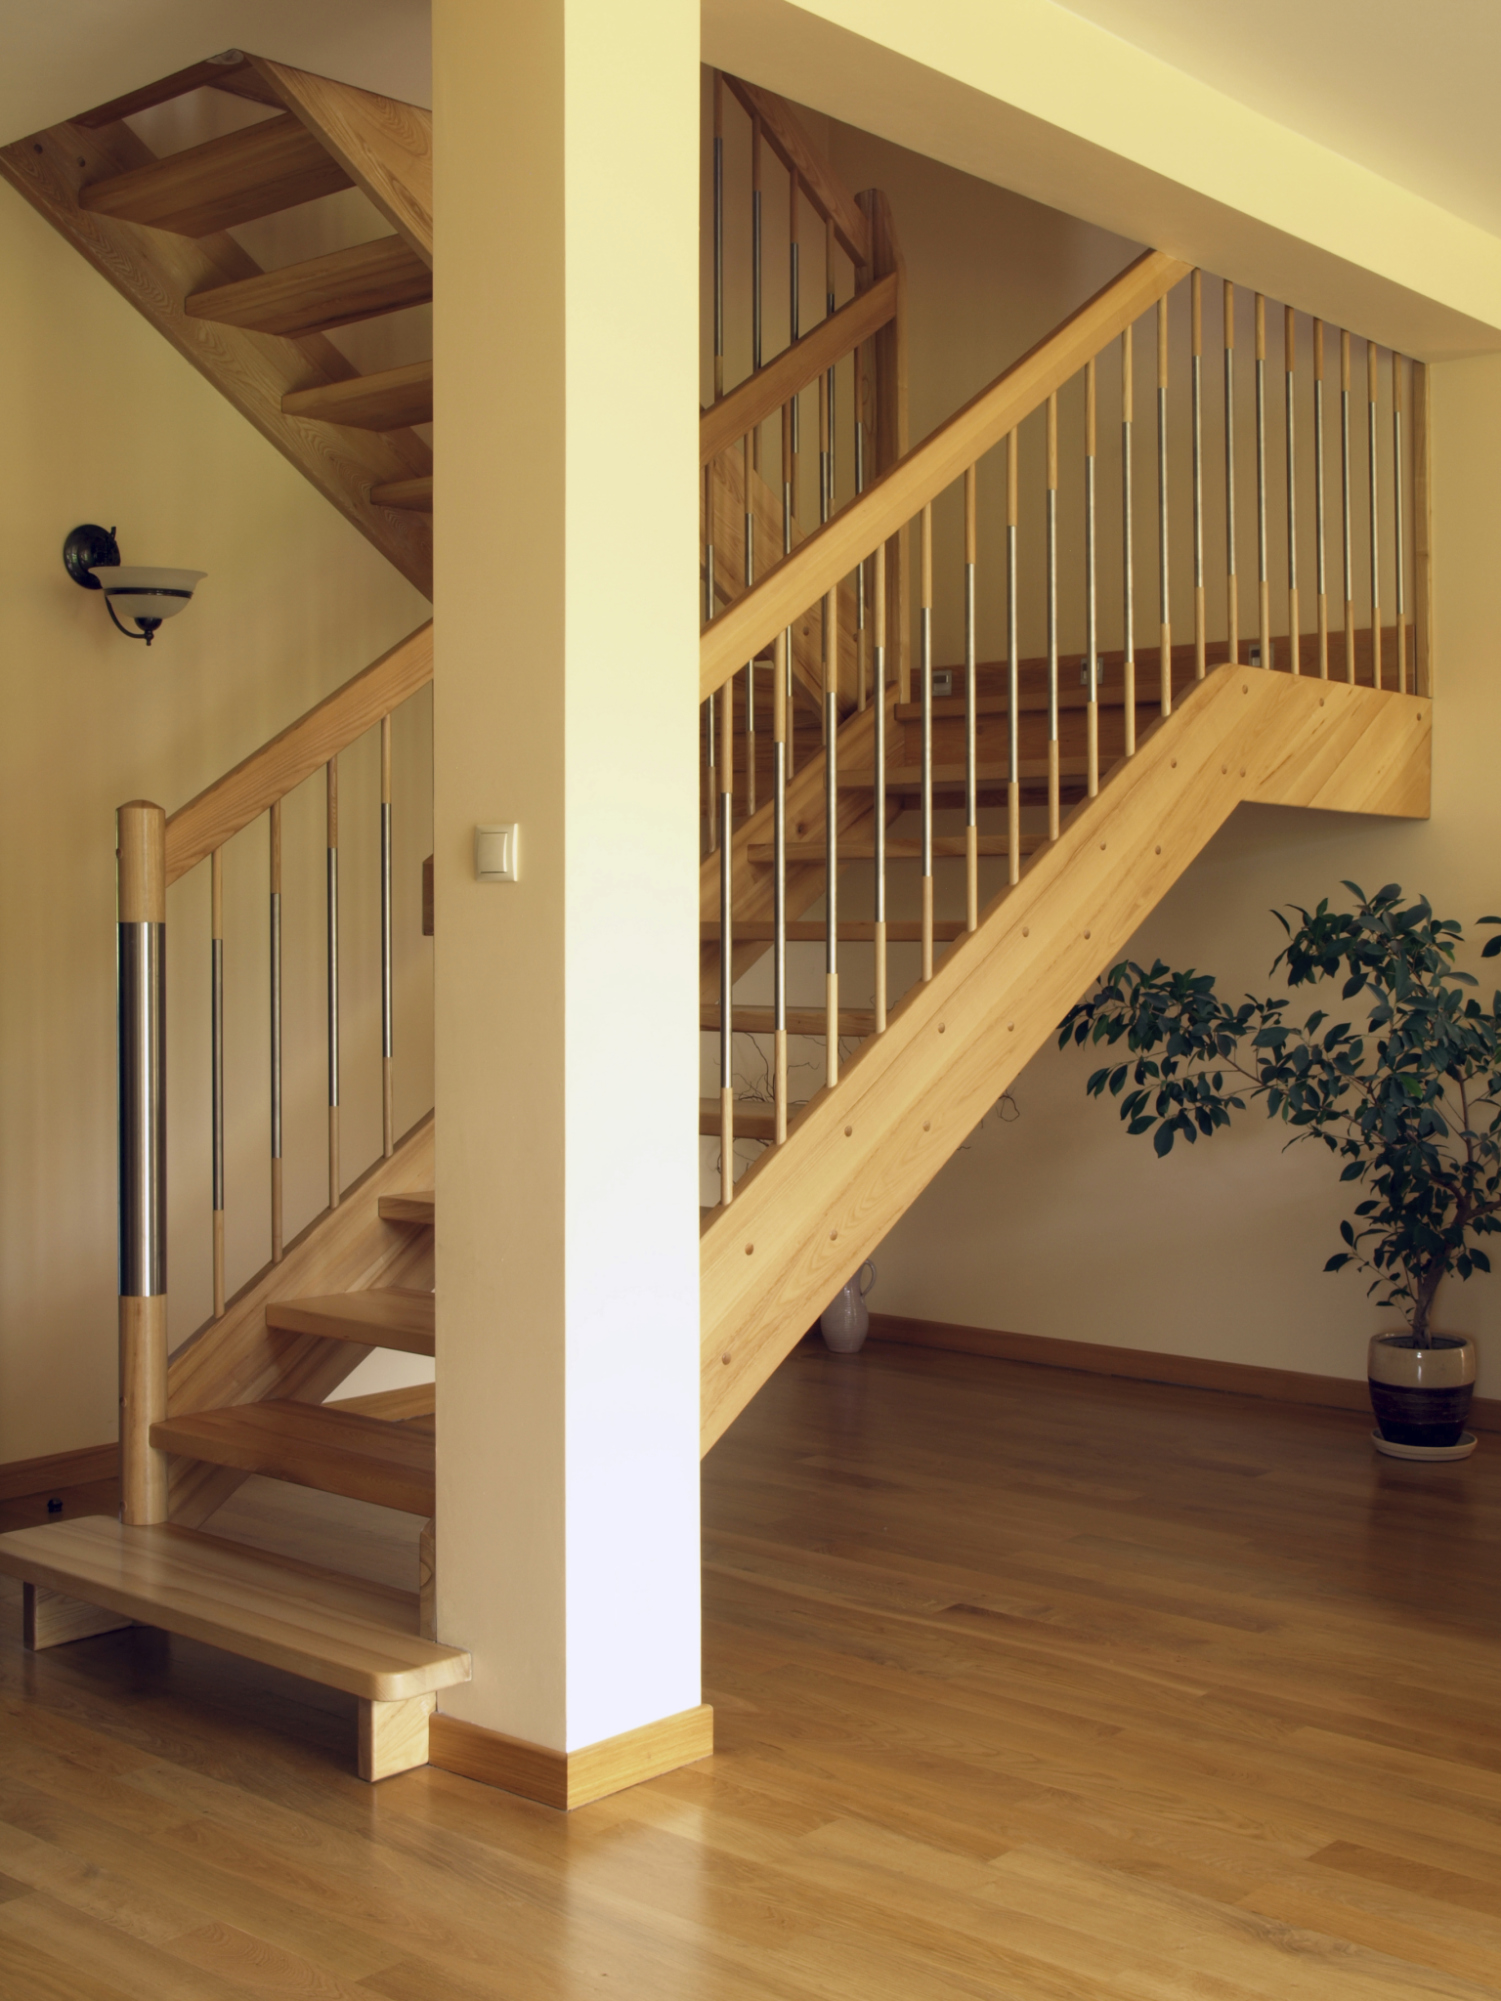 Wooden staircase with open risers and spindles wrapped in metal.